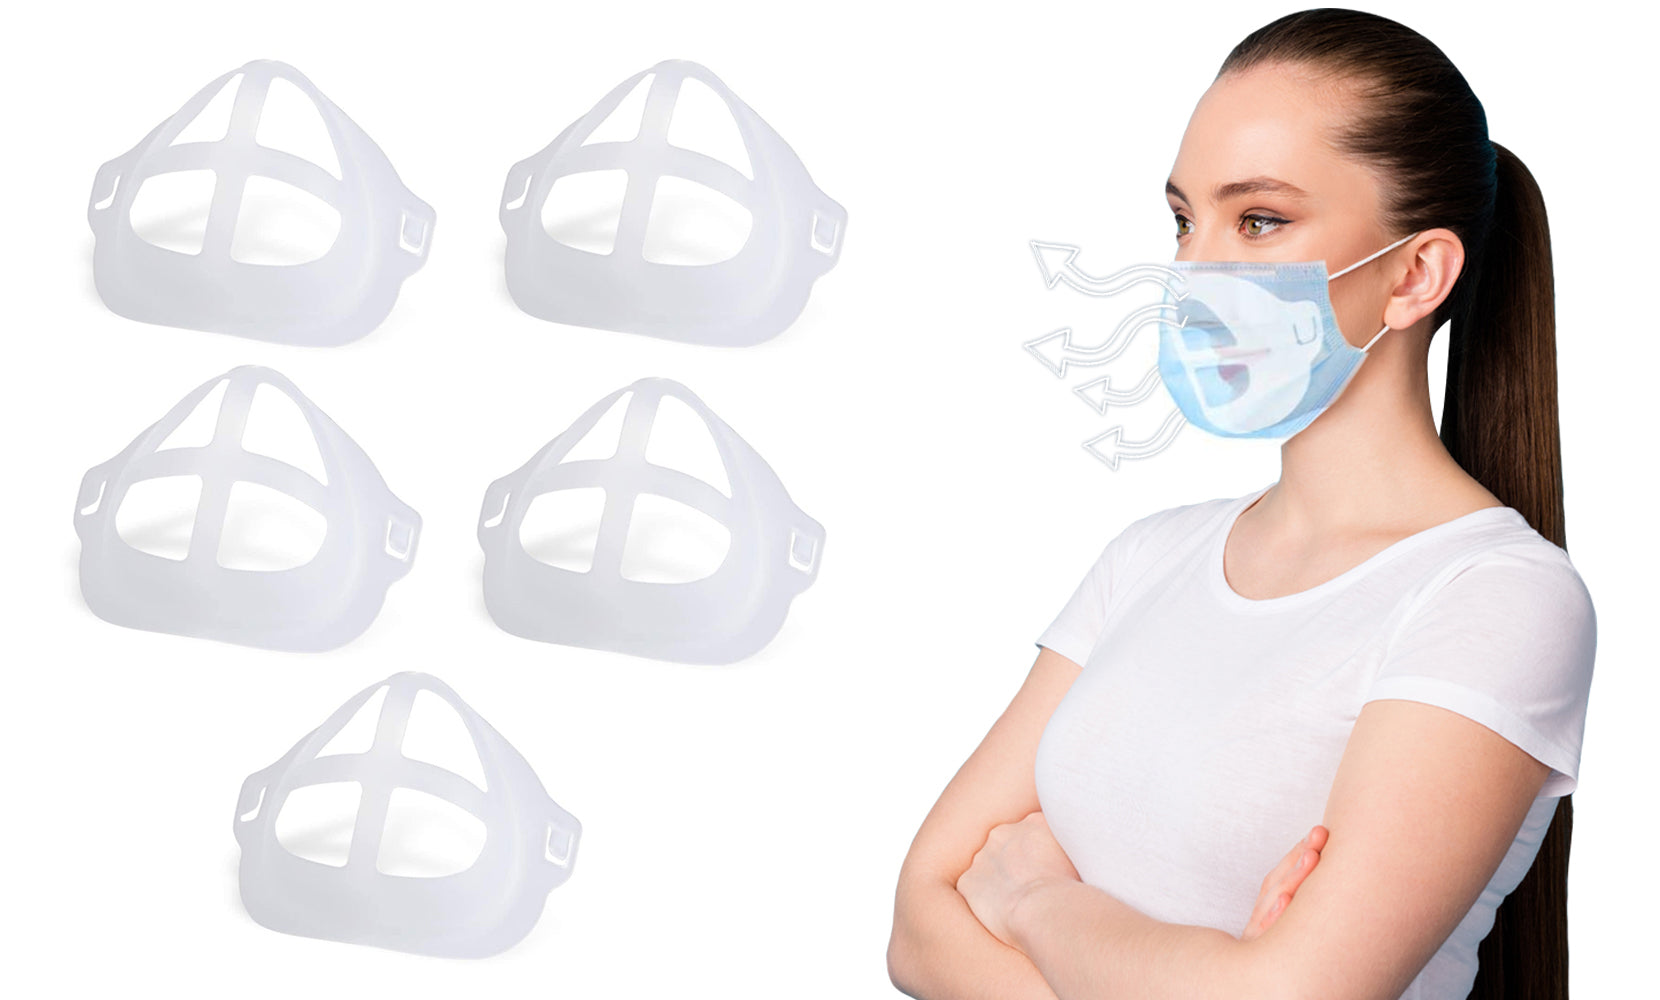 3D Internal Support Face Mask Bracket for Comfortable Breathing  (5-Pack)